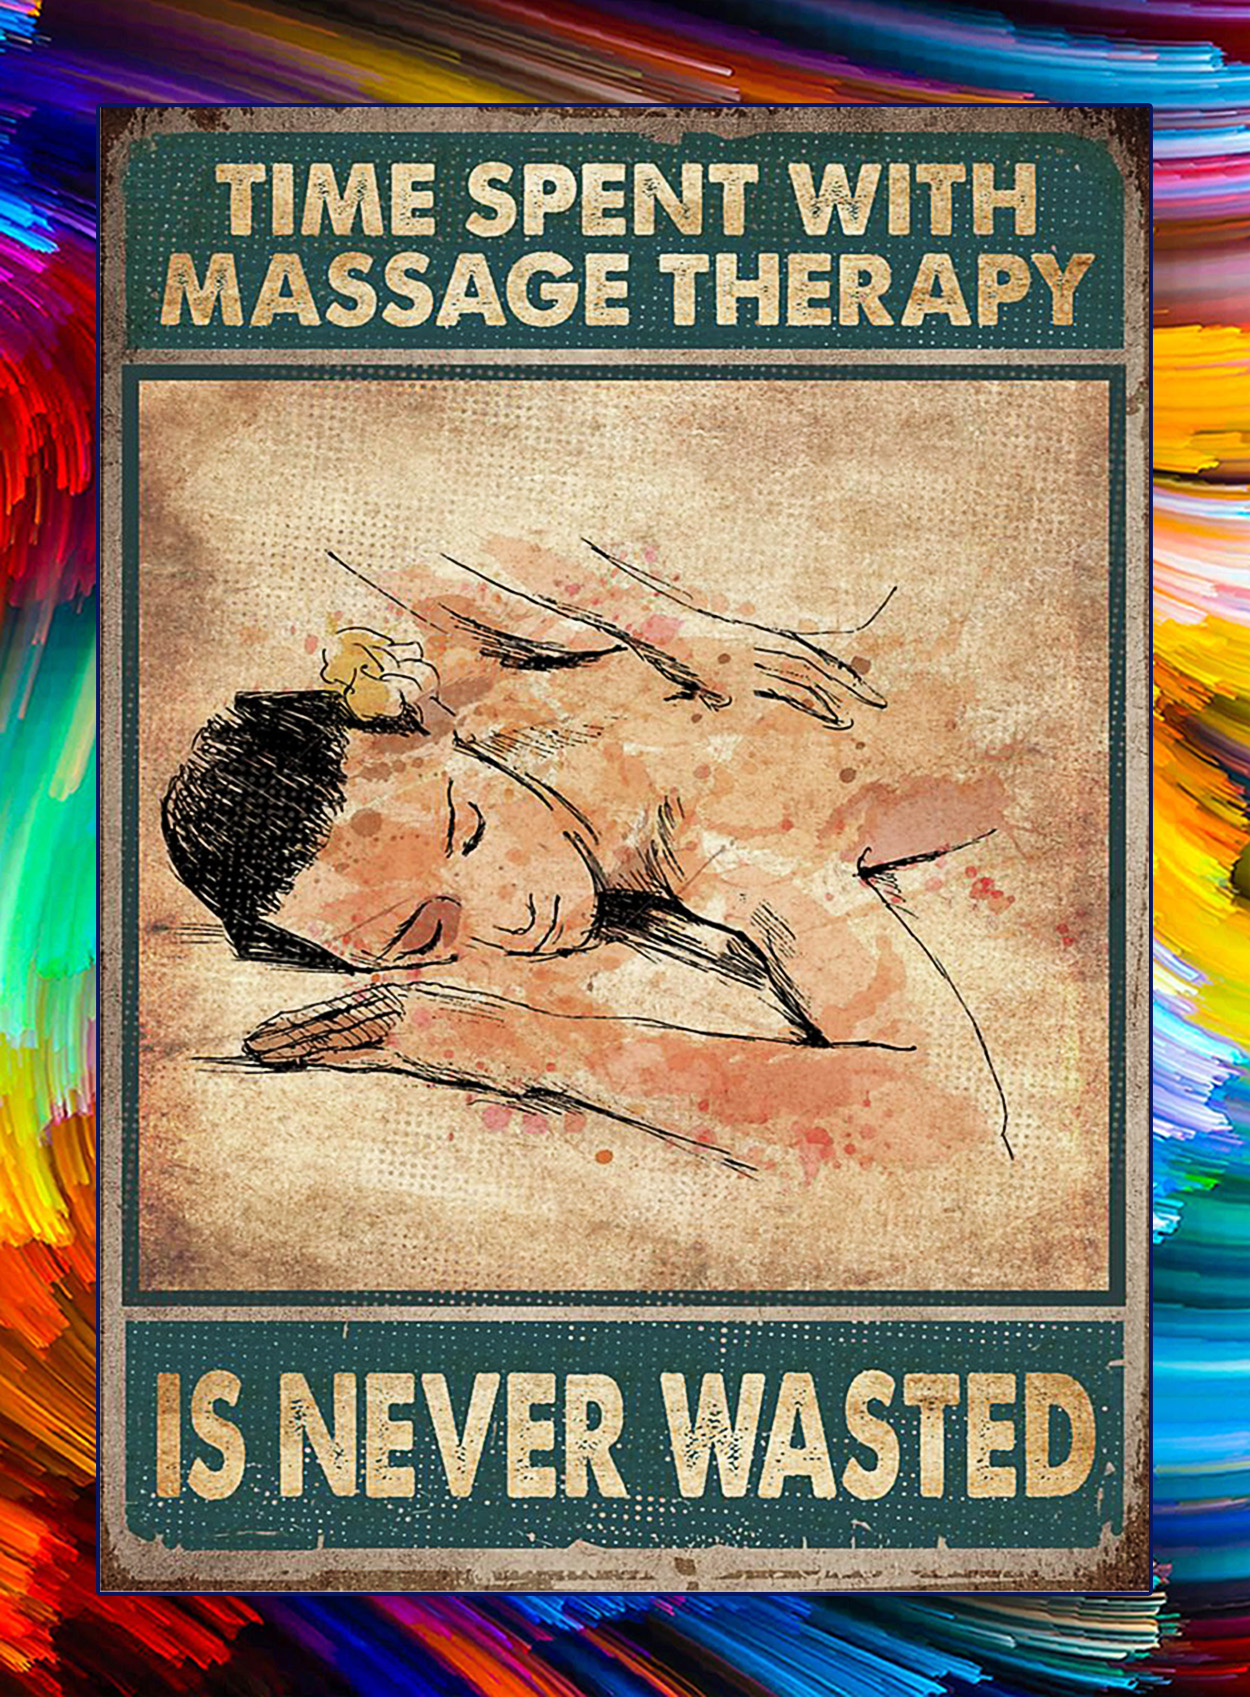 Time spent with massage therapy is never wasted poster - A3